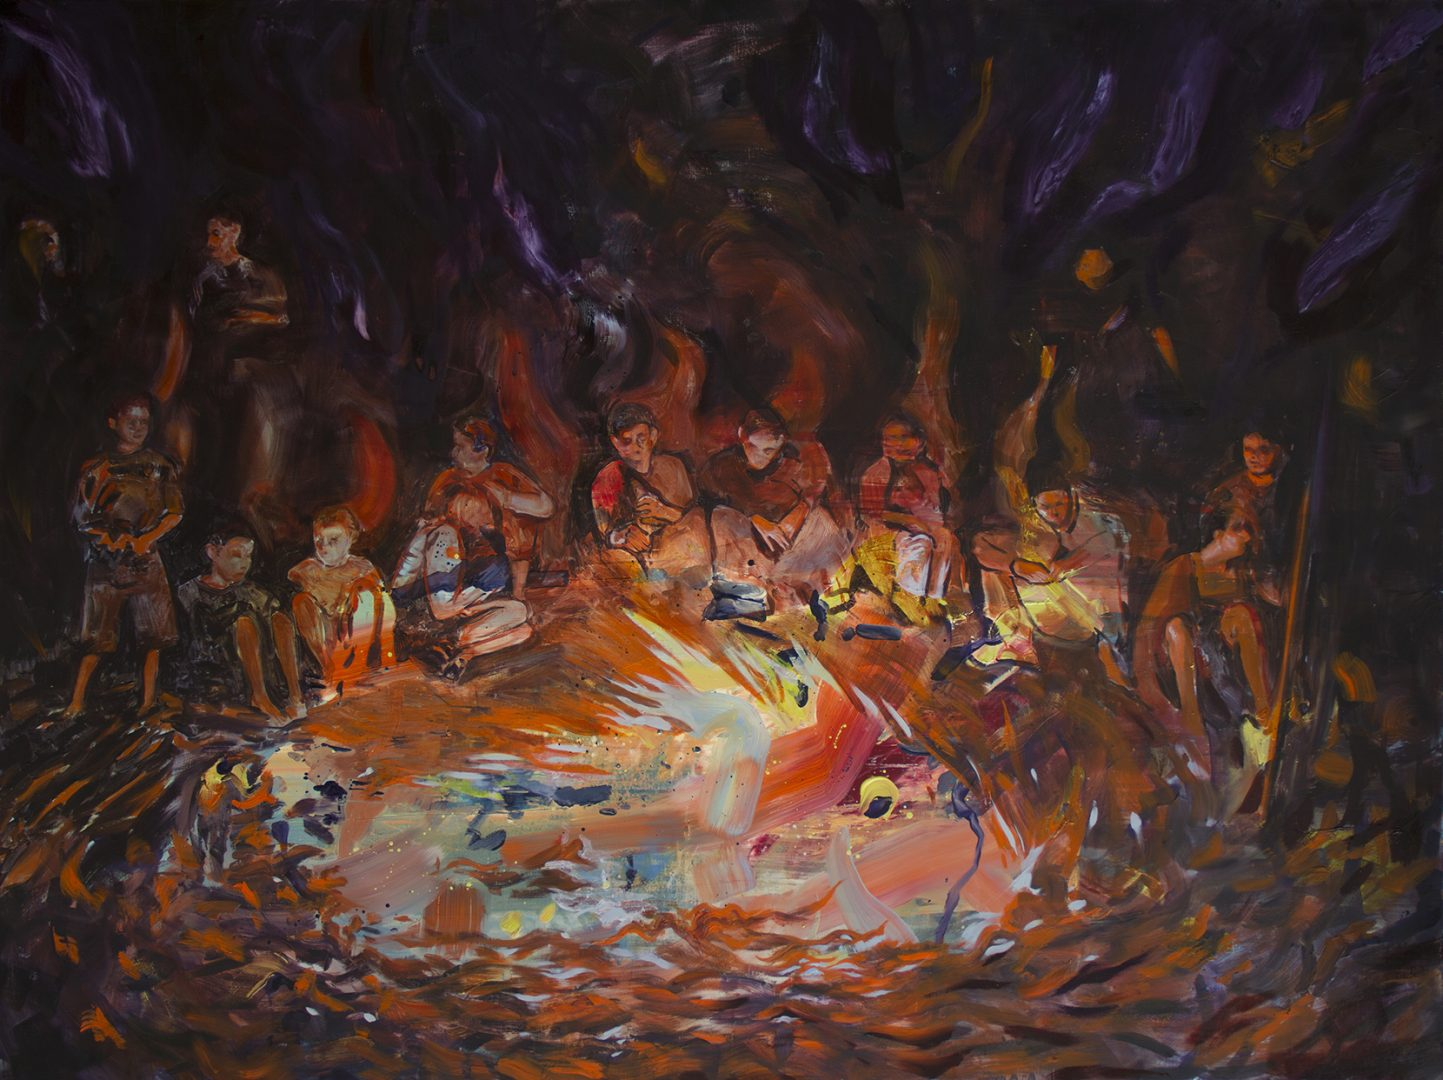 Lorella Paleni, Benandanti (Night Guests) Oil on canvas, 150x200cm